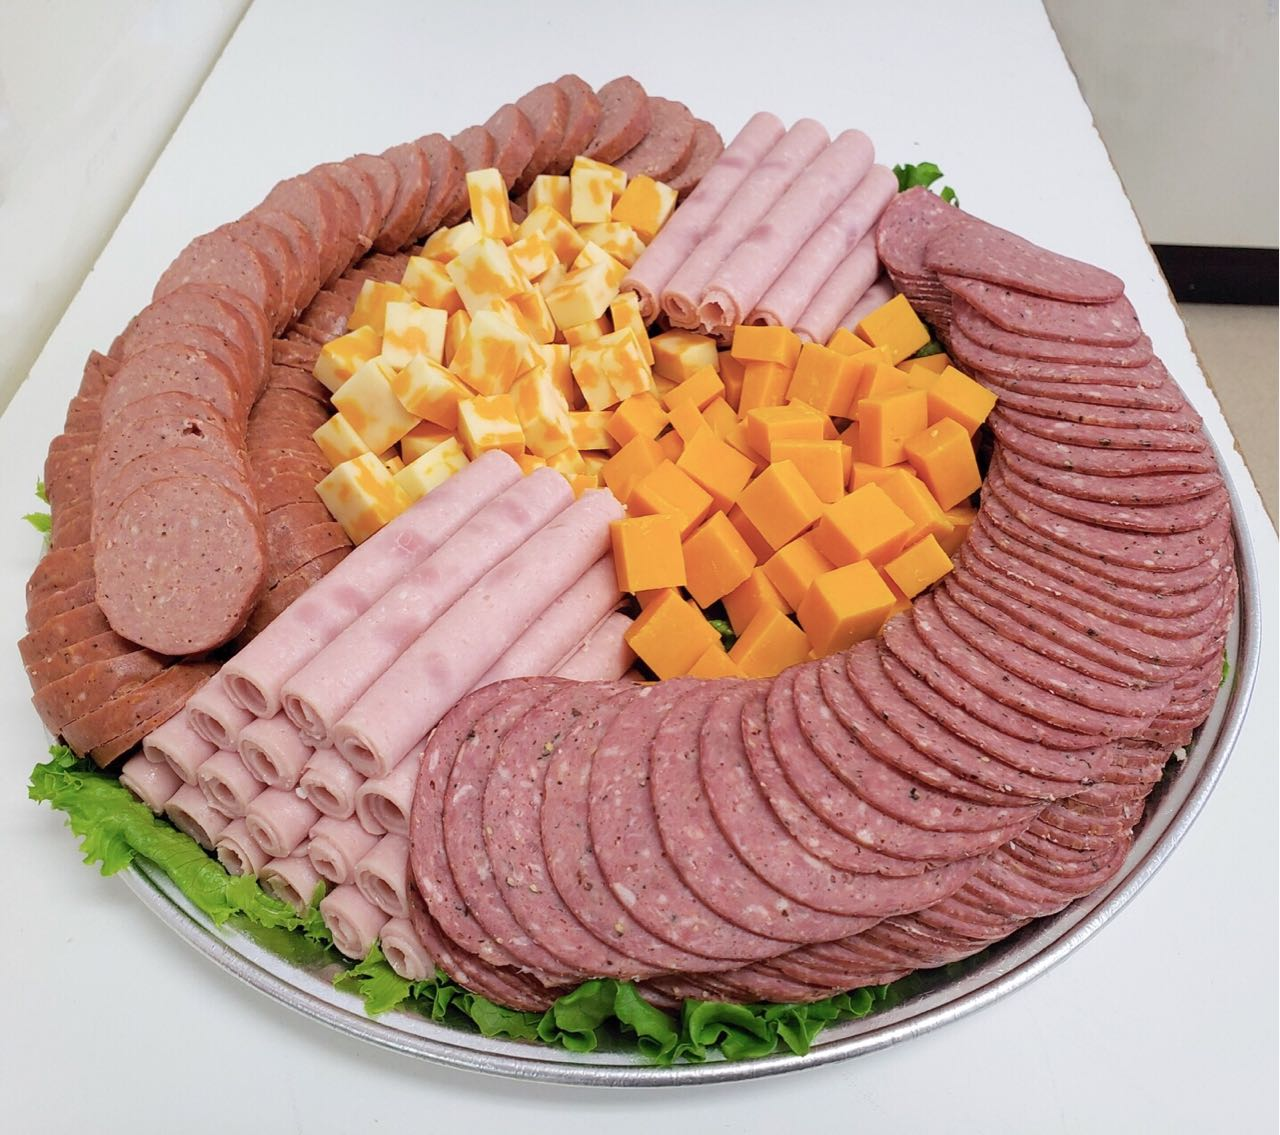 EastEnd Meats & Sausage Freshly-Prepared Meat, Cheese, Pickles Deli Trays for either wedding social, family party or business gathering in Winnipeg. Custom Menus Available